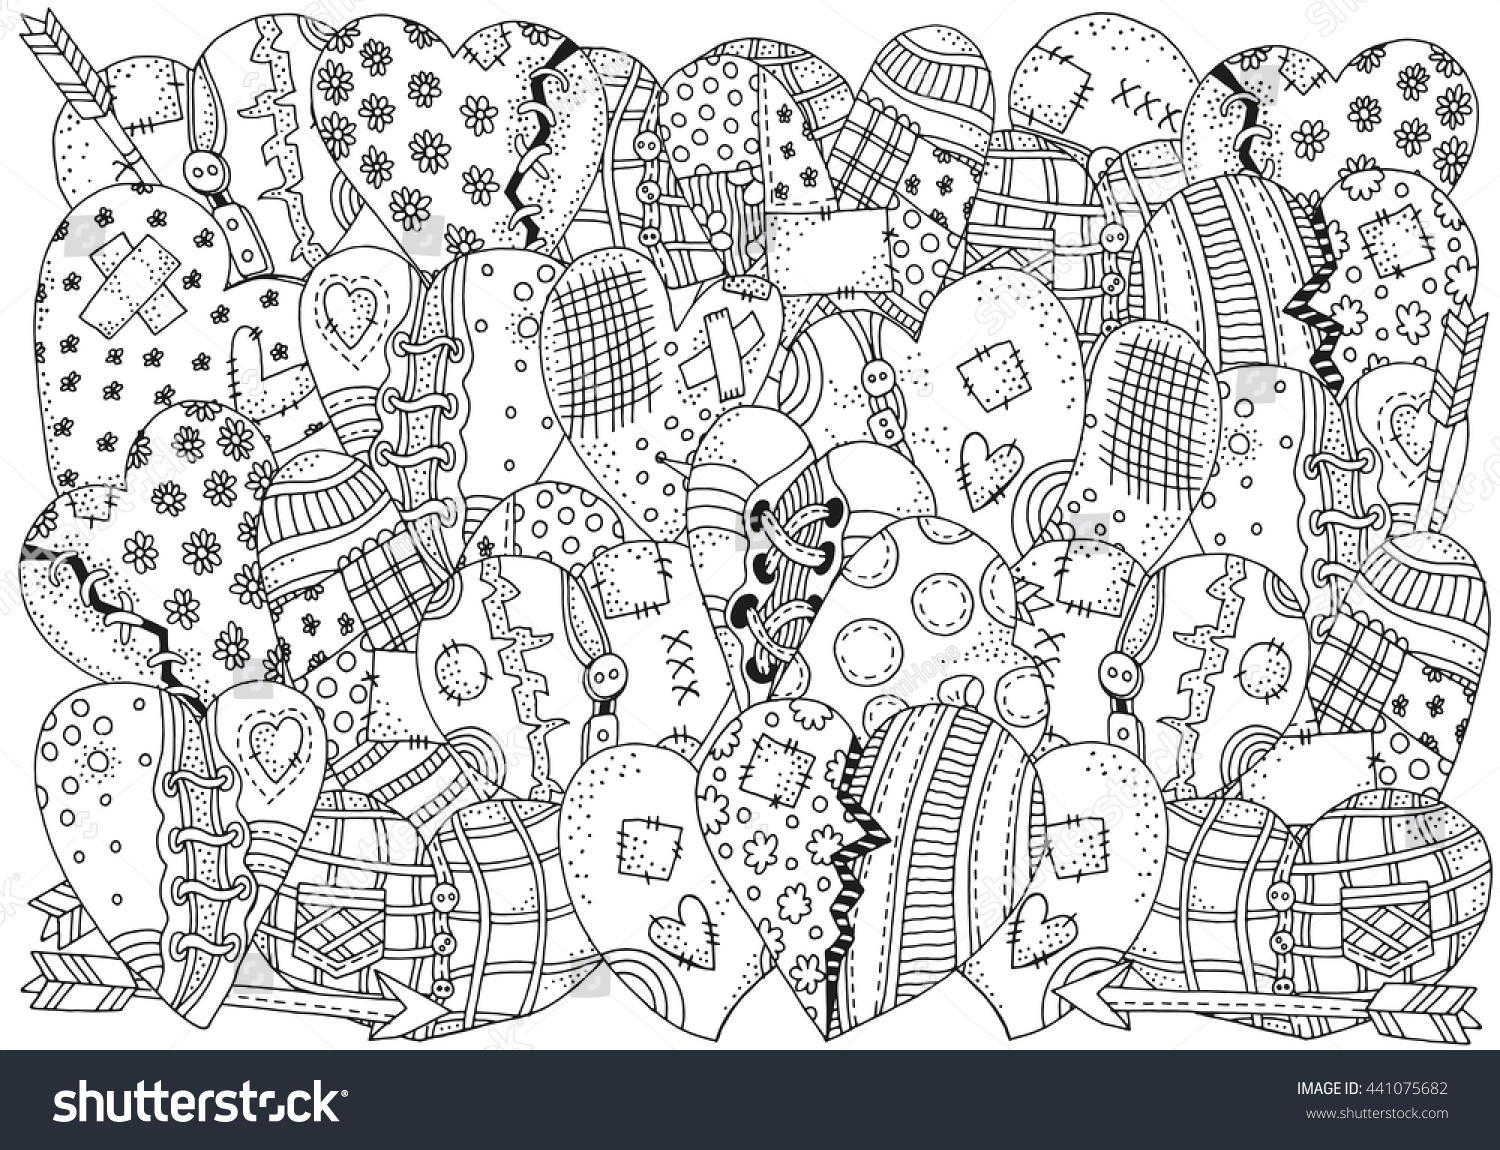 Raster copy pattern coloring book hand stock illustration Coloring book background